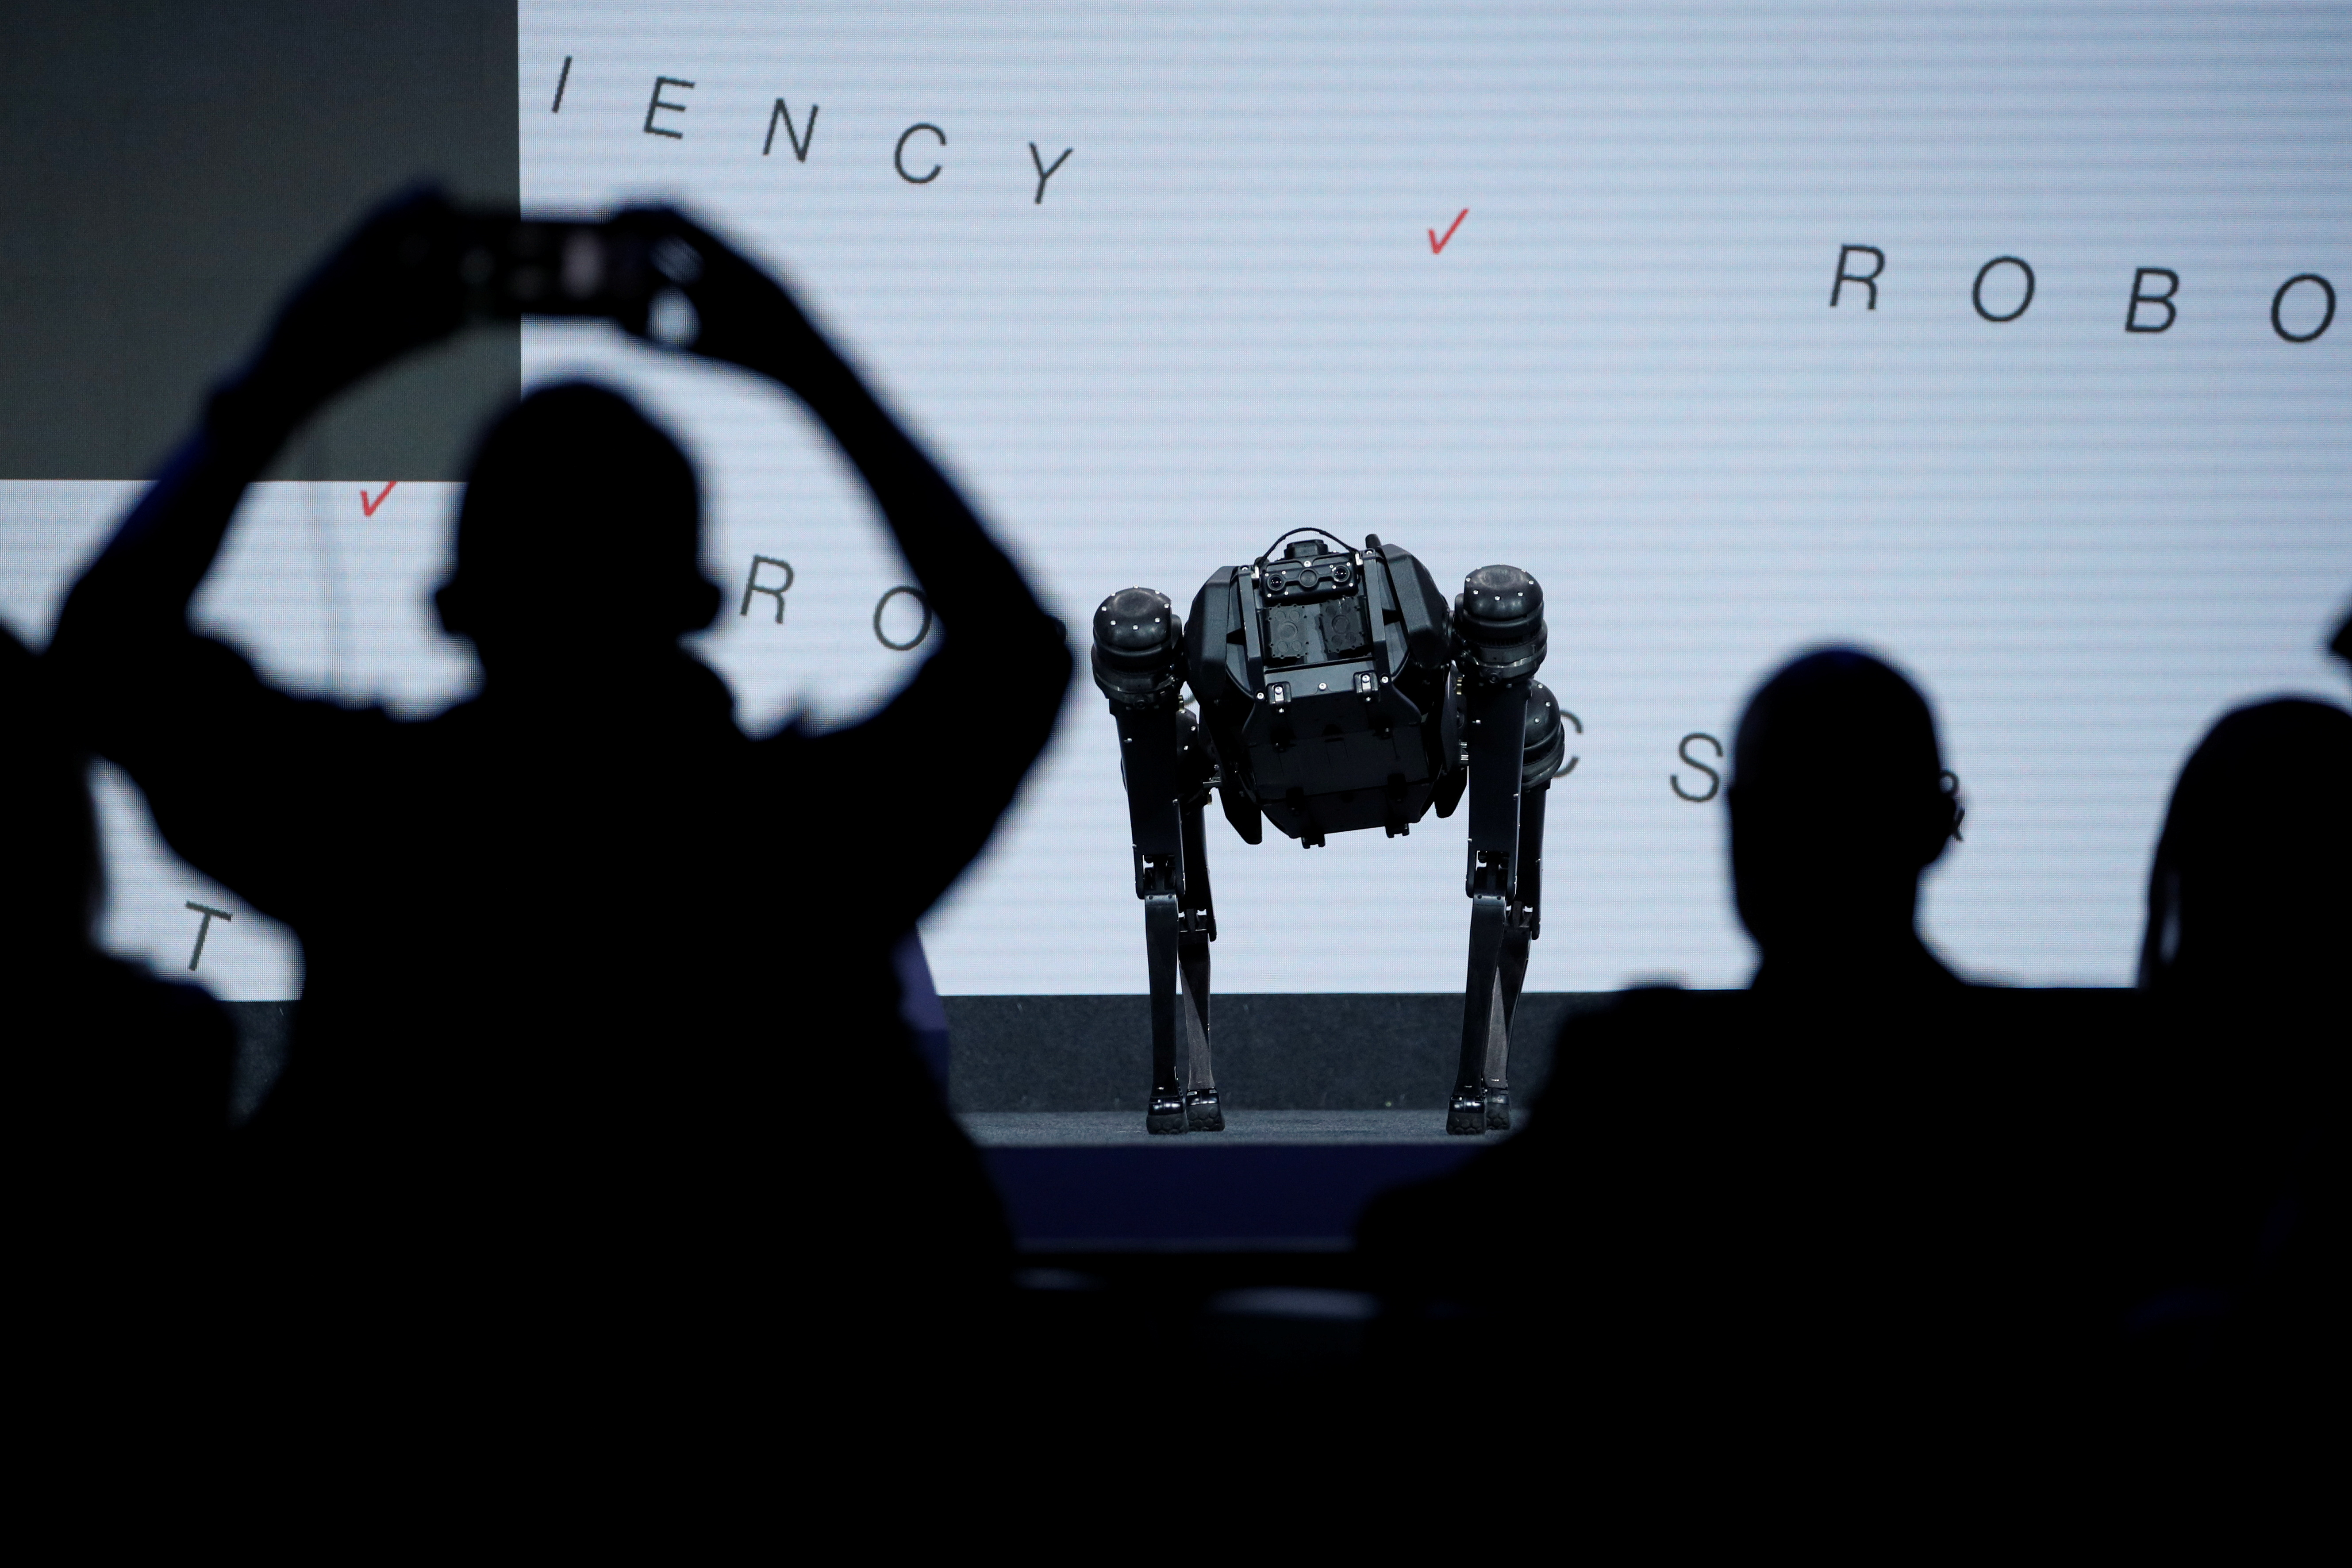 A robot is pictured during the Mobile World Congress (MWC) in Barcelona, Spain, June 28, 2021. REUTERS/Albert Gea